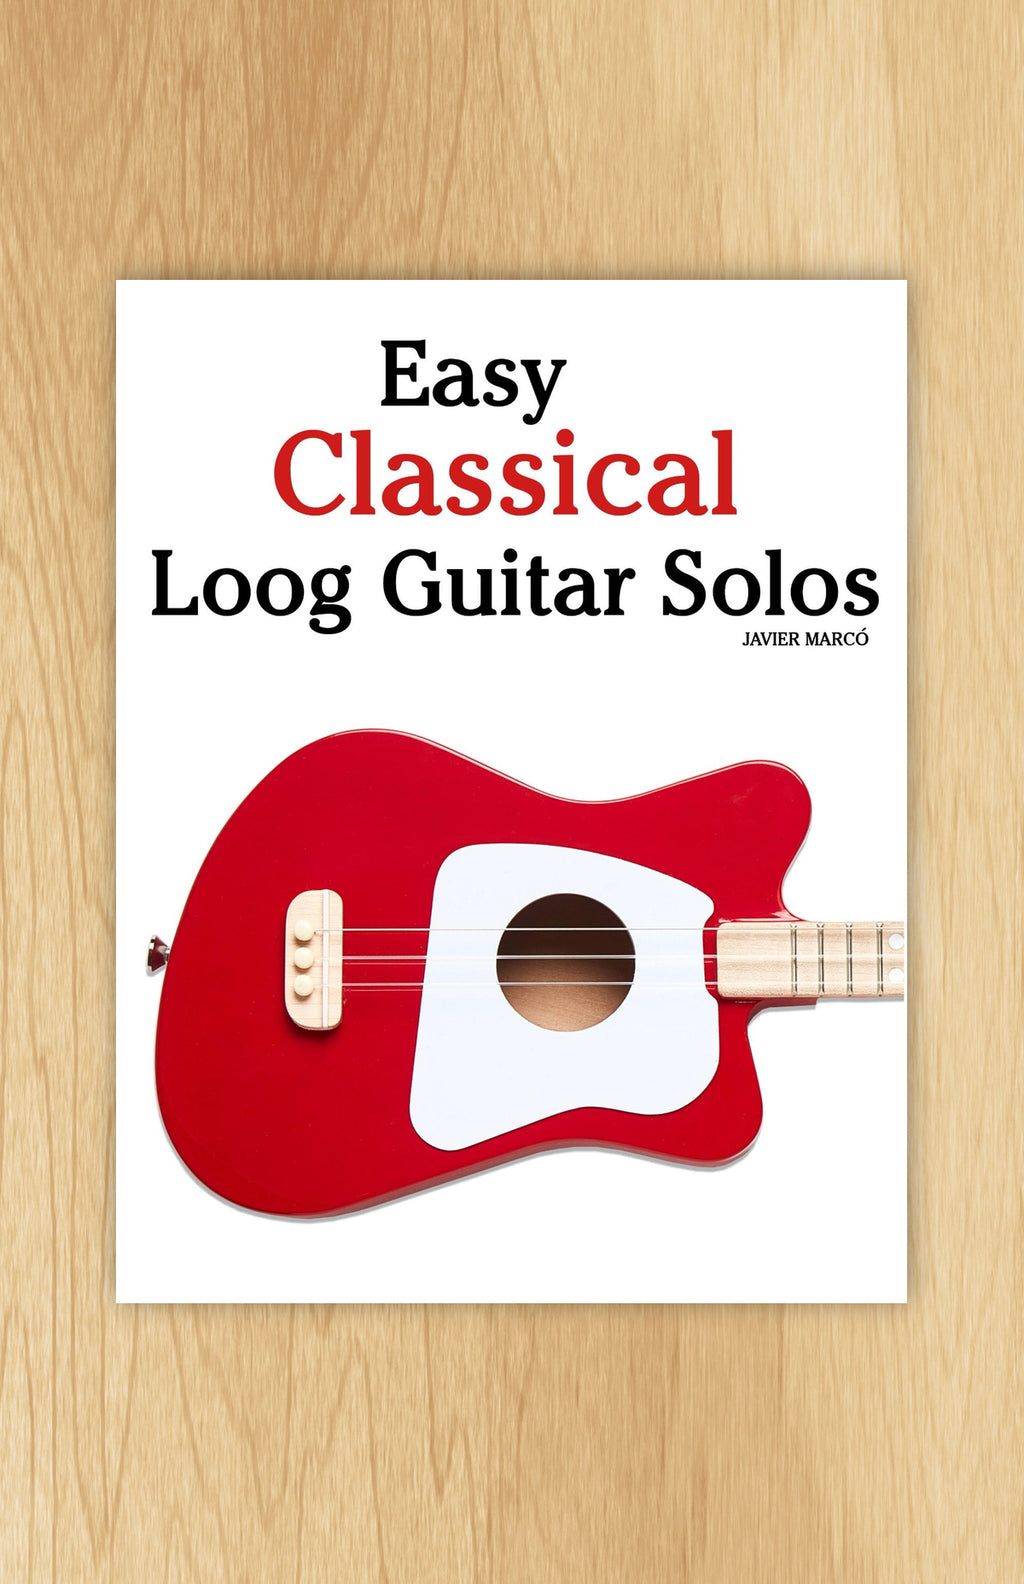 Easy Classical Loog Guitar Solos